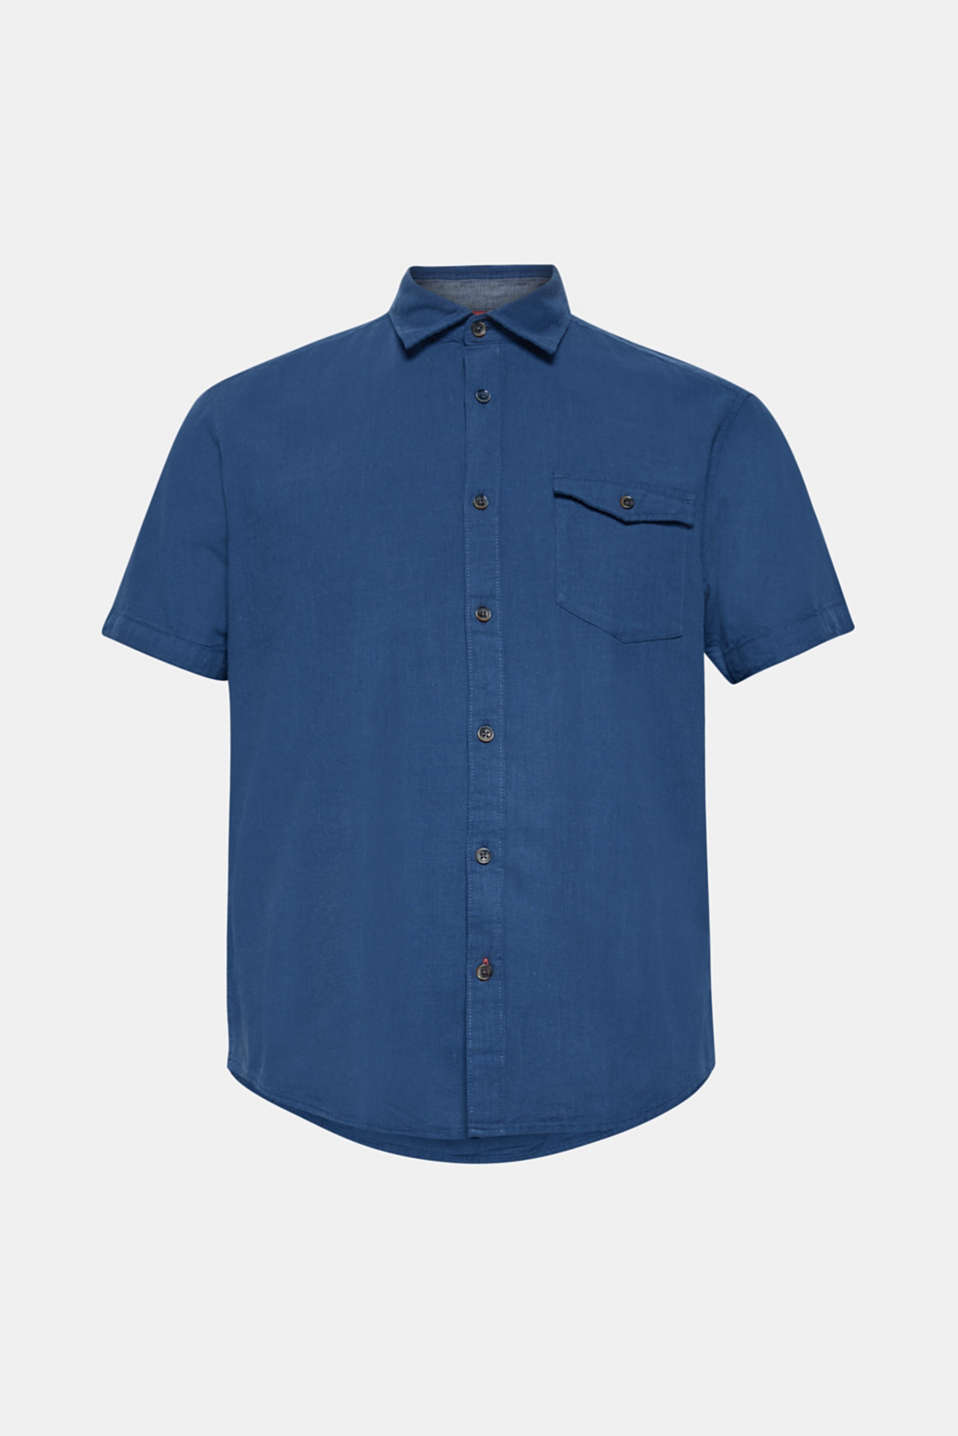 Shirts woven Regular fit, DARK BLUE, detail image number 5